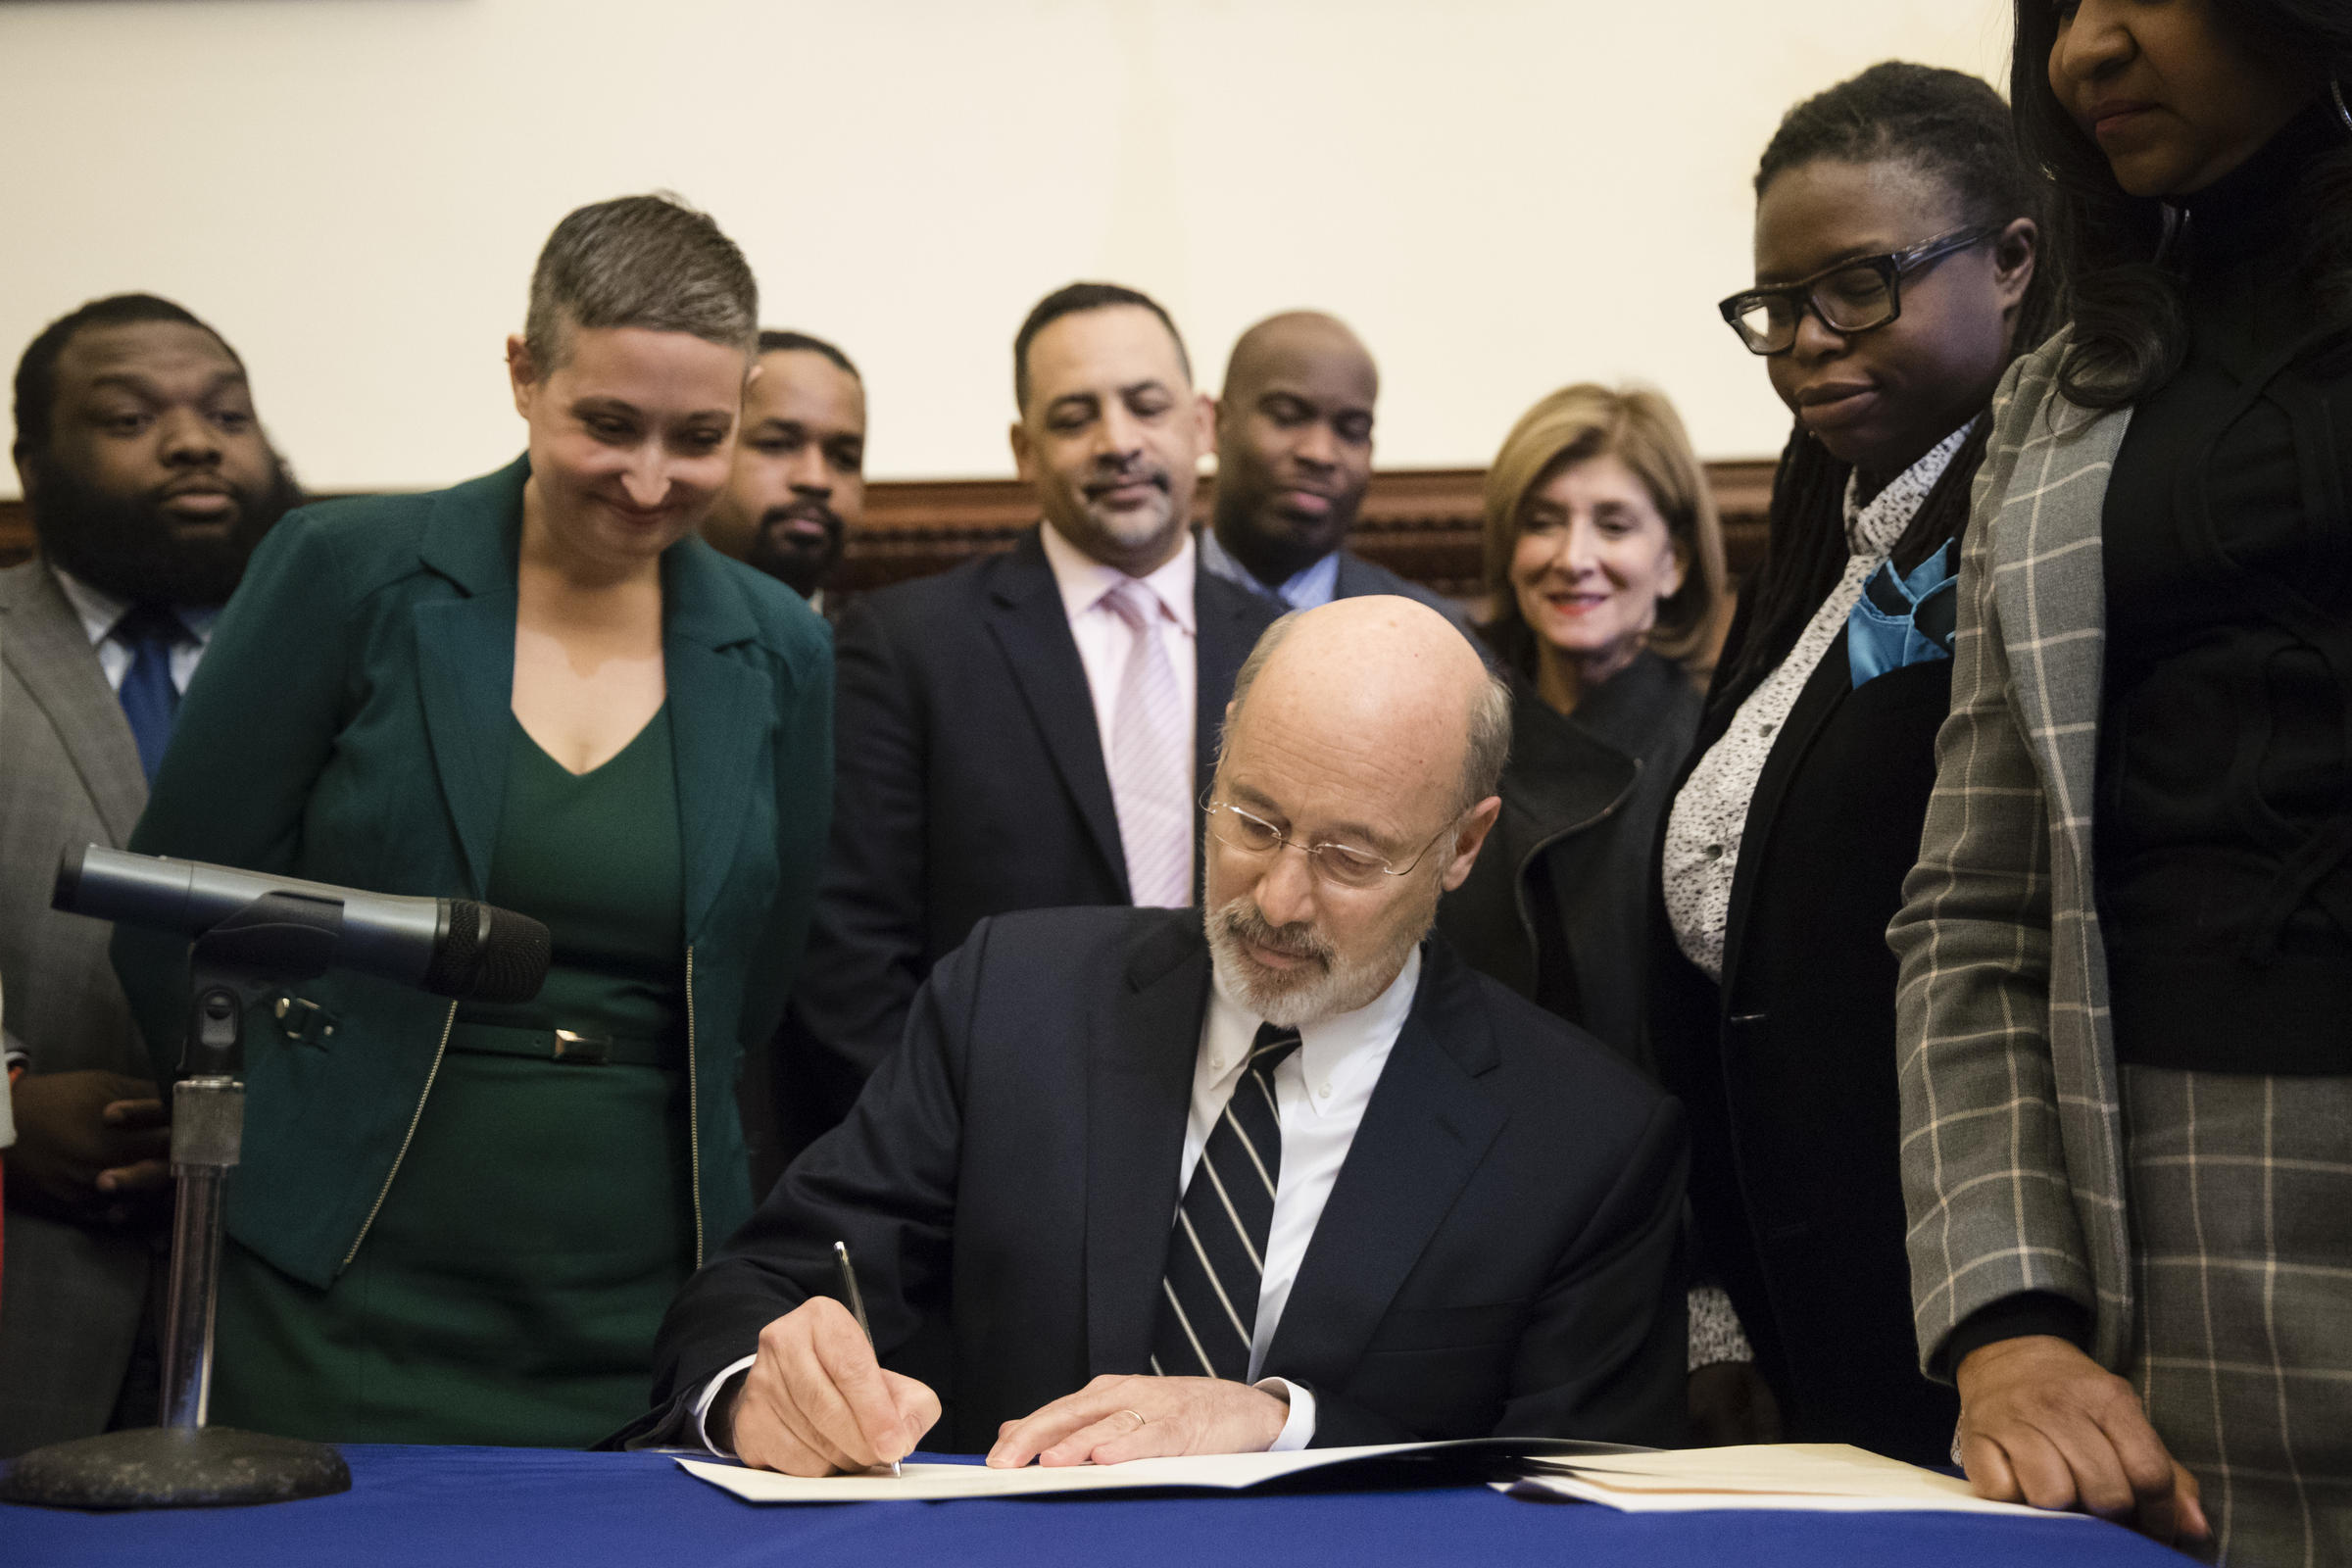 Pennsylvania governor vetoes 20-week abortion ban